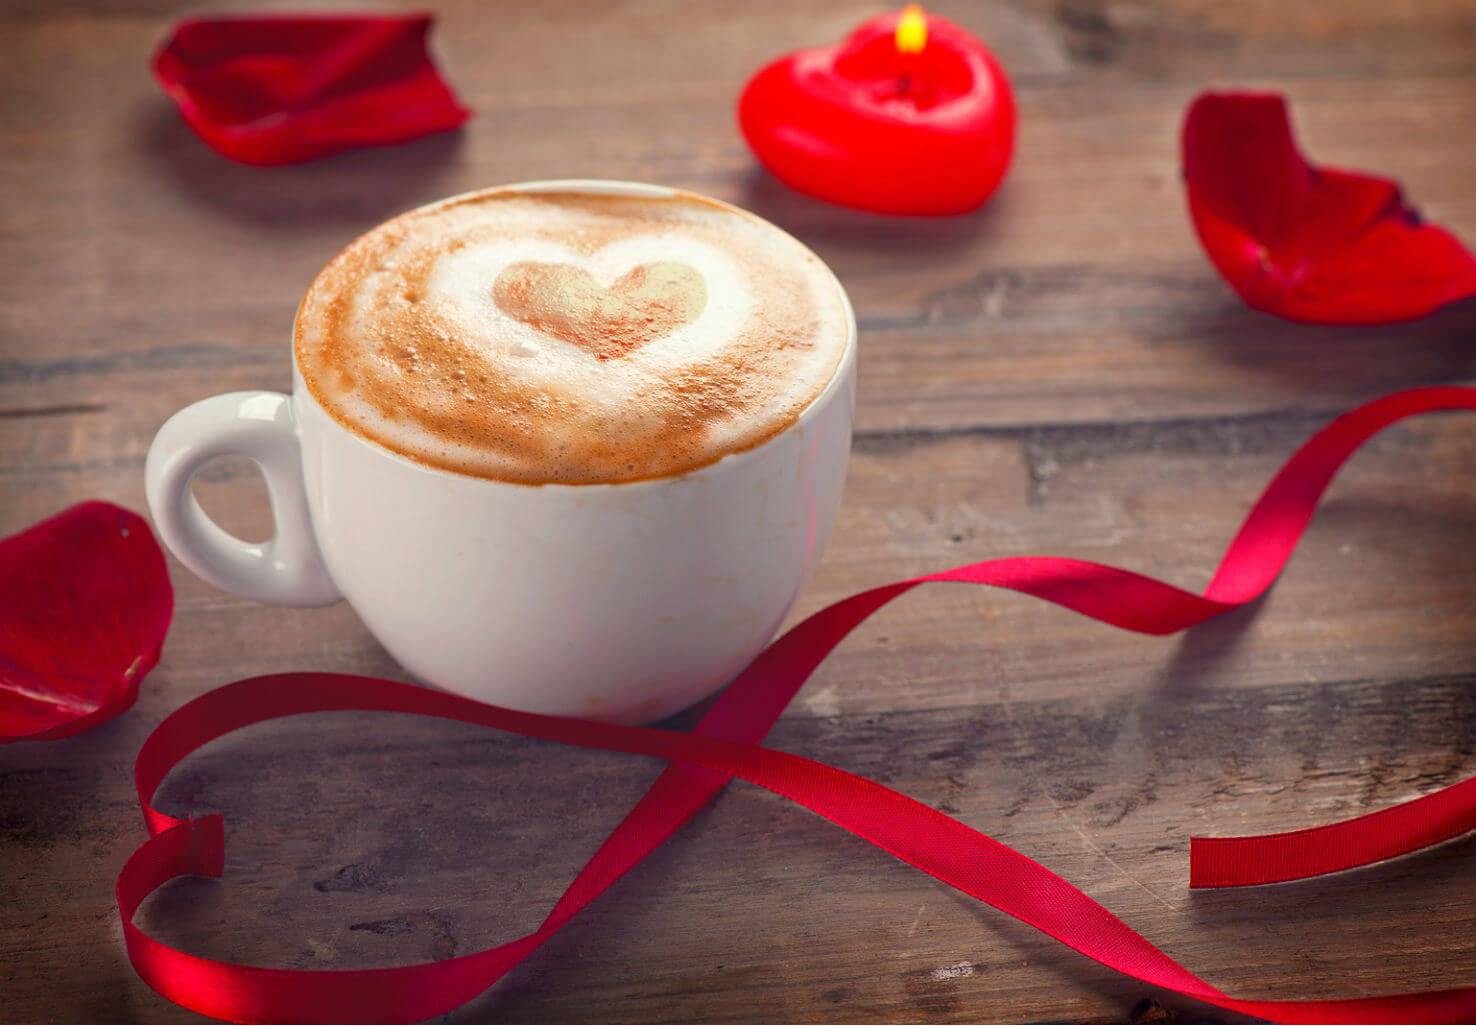 Hot chocolate cup with heart pattern sits on table by ribbon, rose petals, and heart-shaped candle